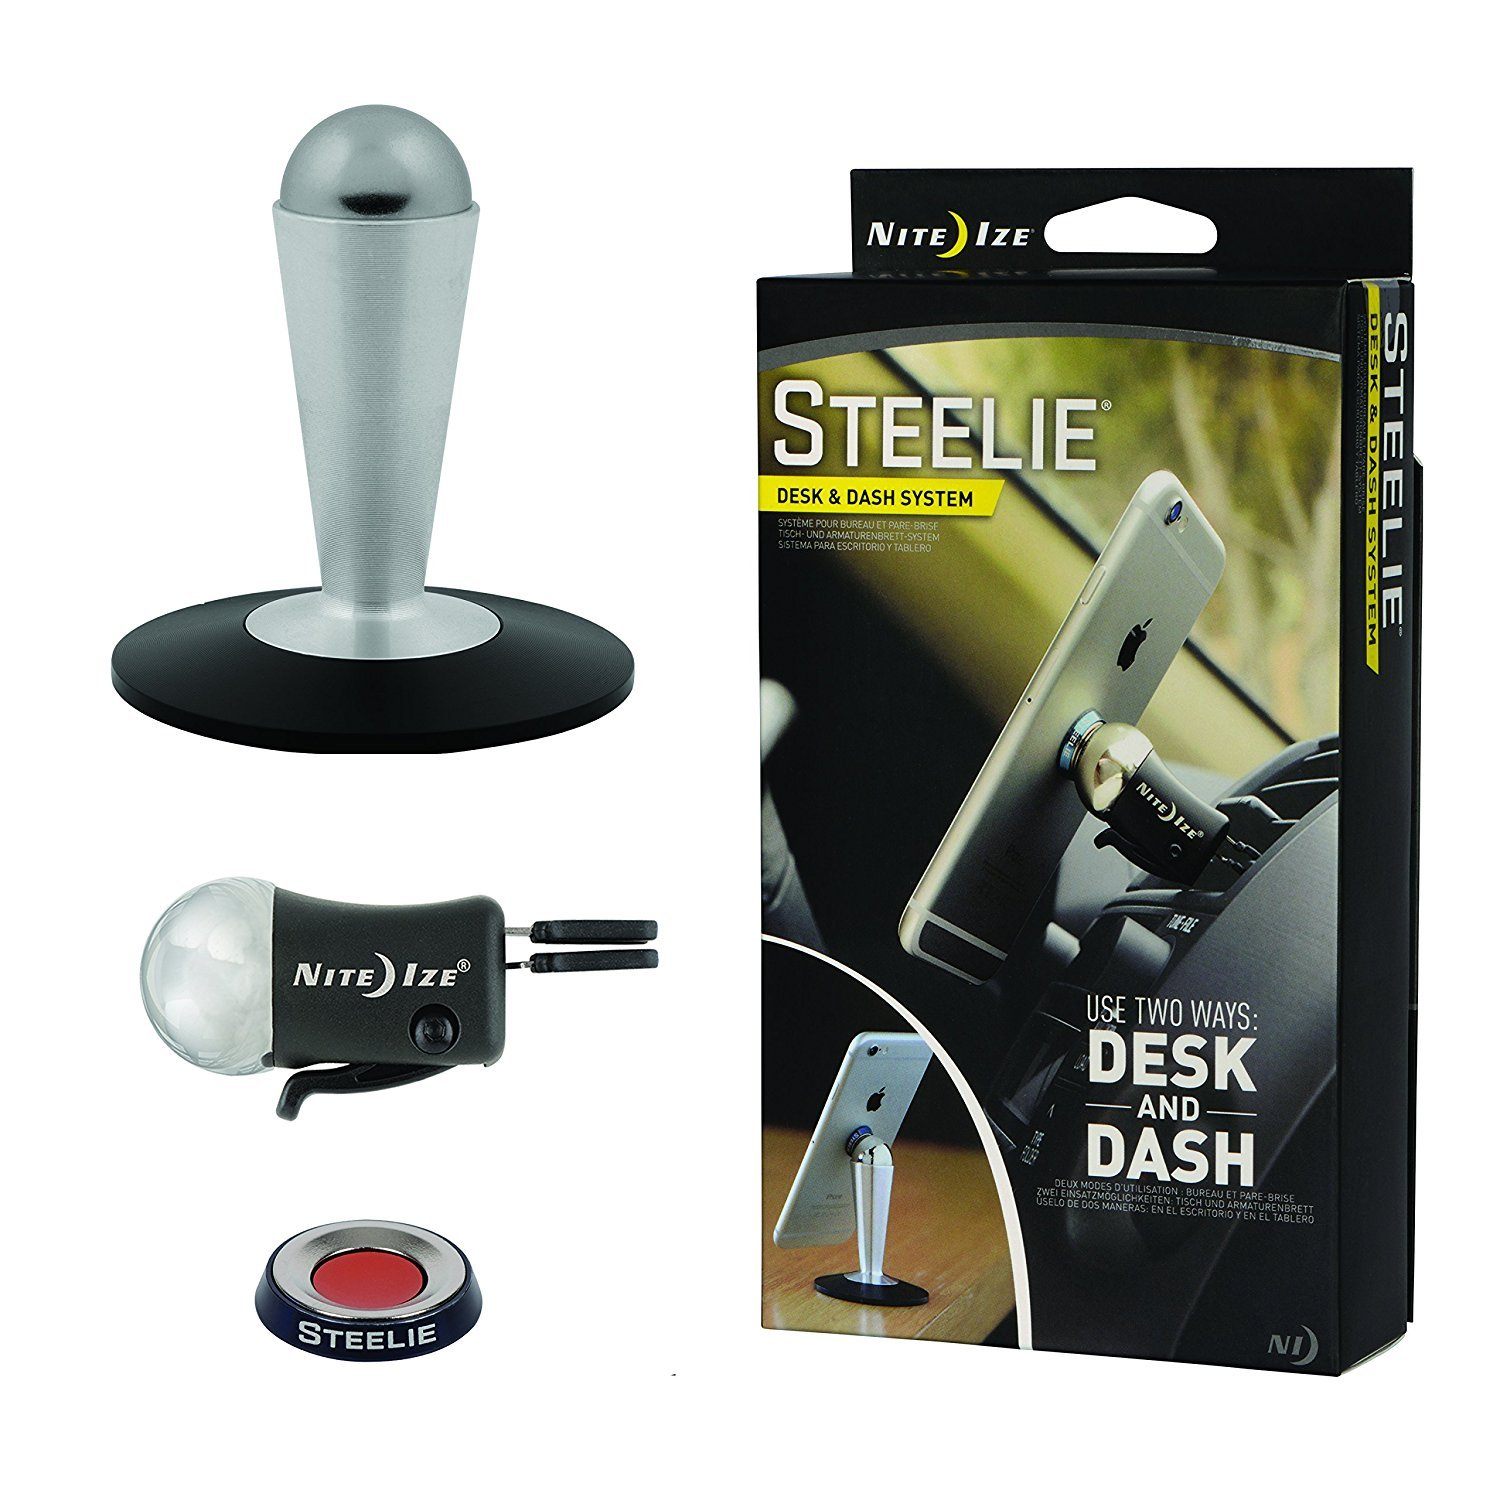 Nite Ize Original Steelie Desk and Dash System - Magnetic Smartphone Mounting System for Your Car Vent and Workspace